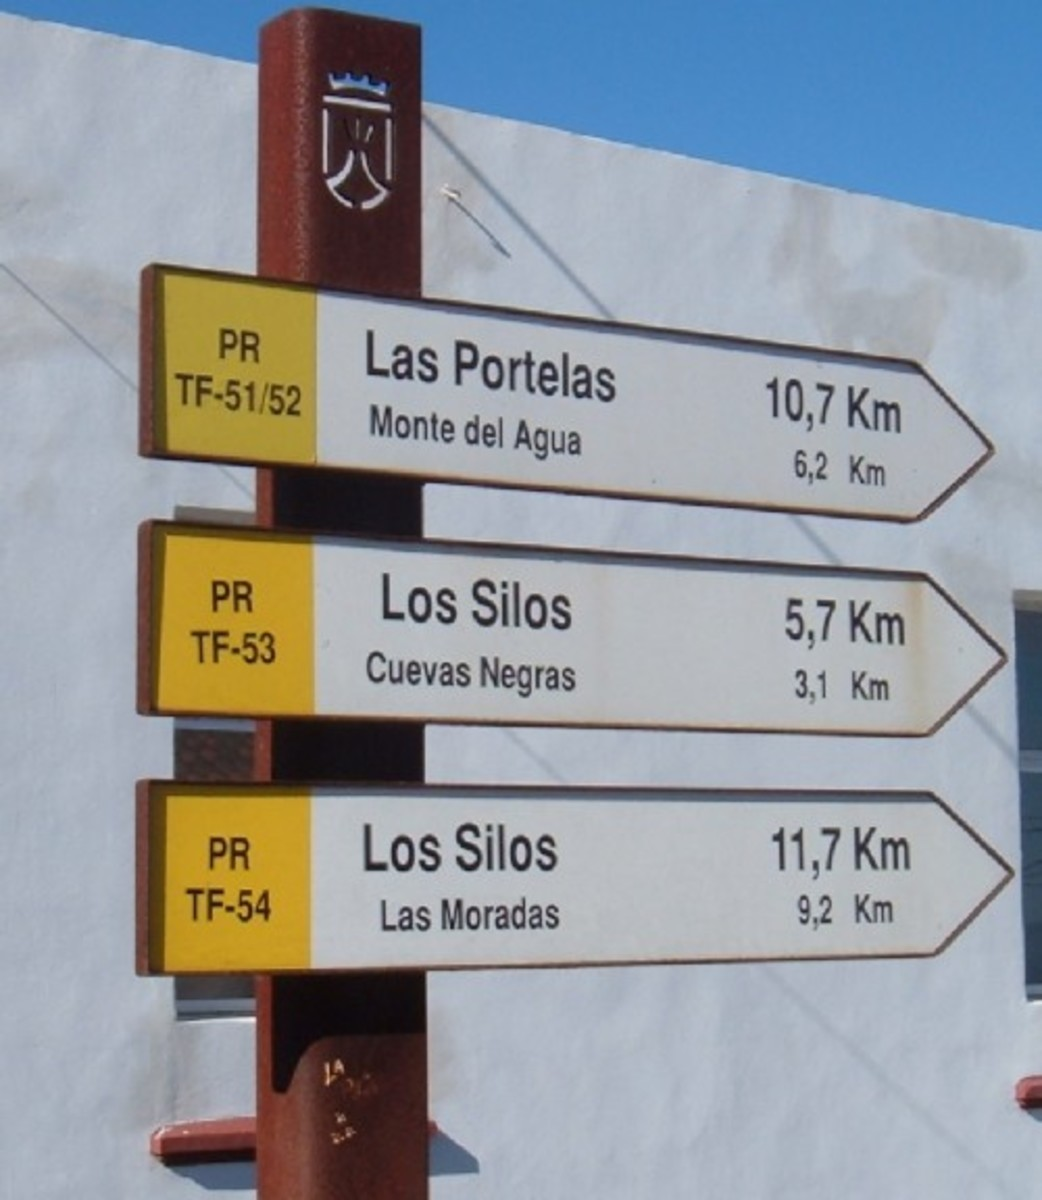 Erjos signpost for Cuevas Negras. Photo by Steve Andrews